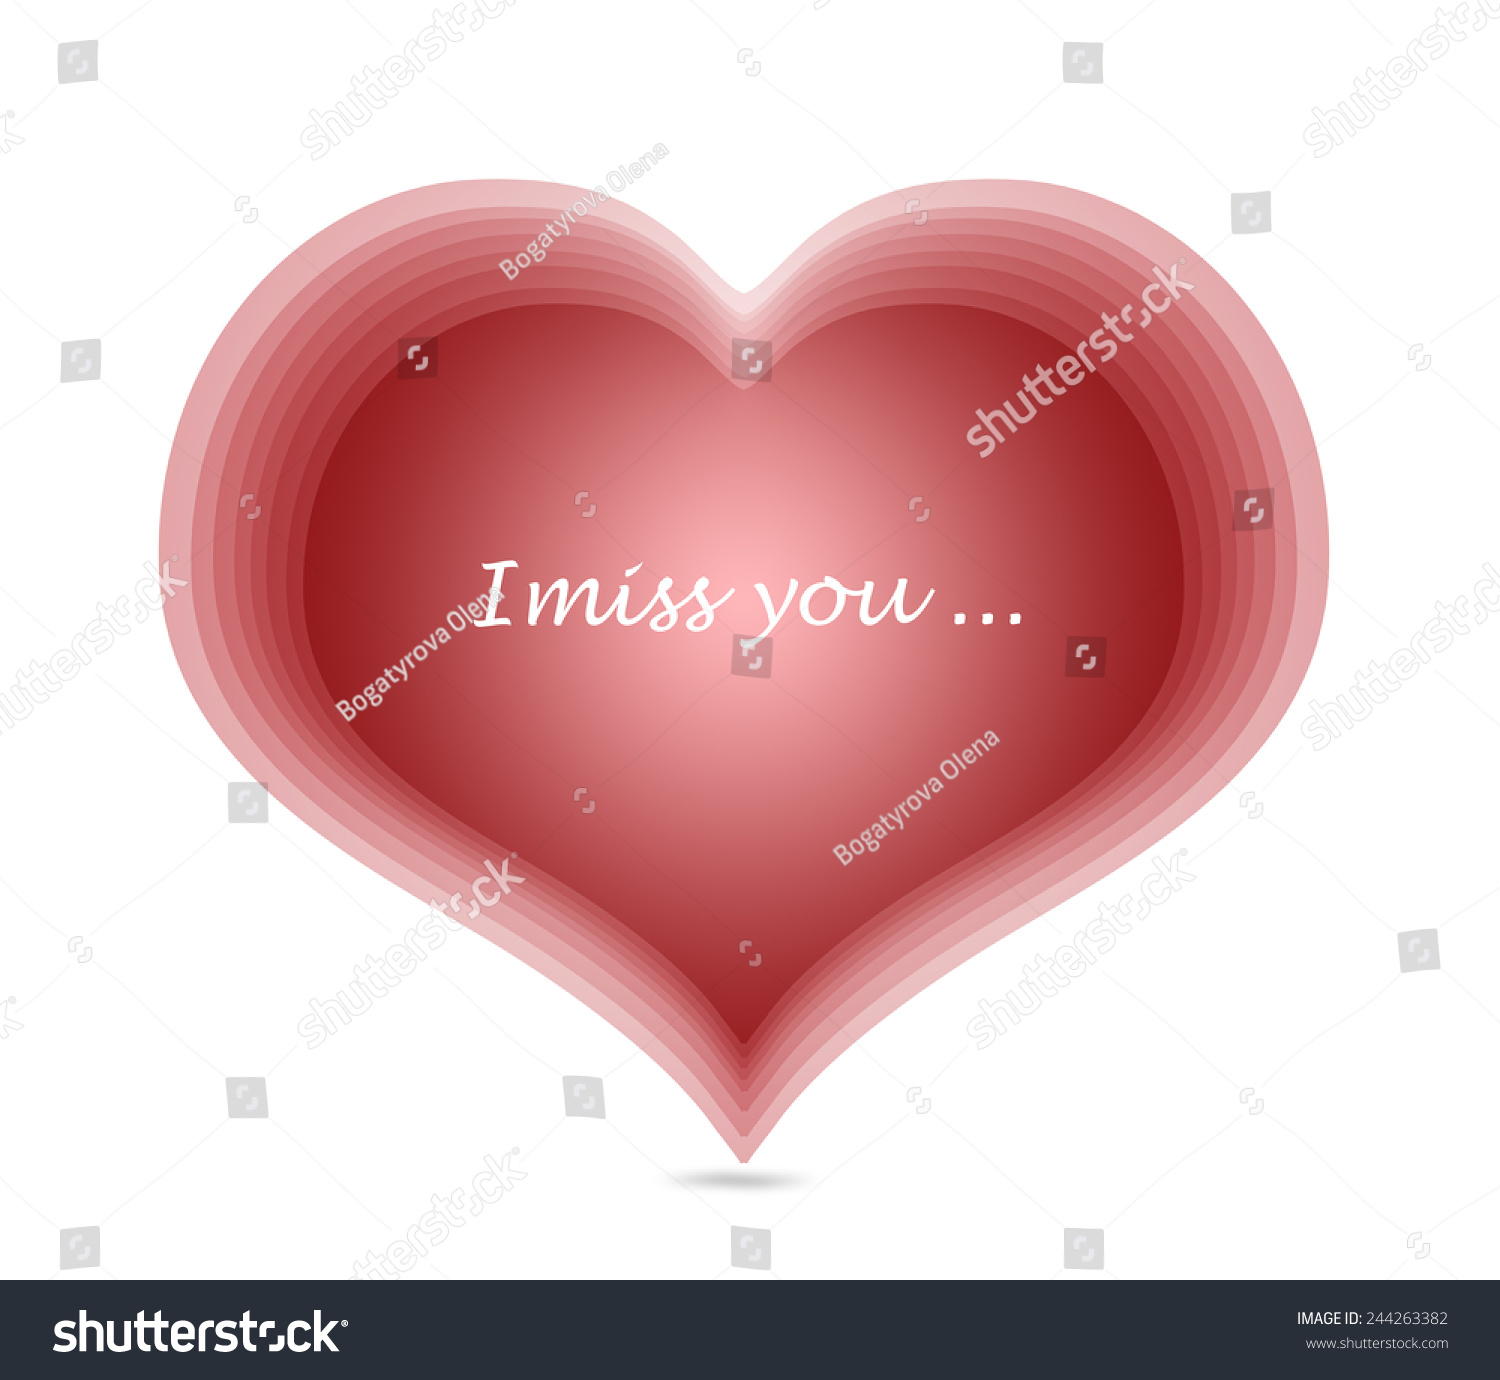 Red harts miss you message symbol stock illustration 244263382 red harts miss you message symbol love card biocorpaavc